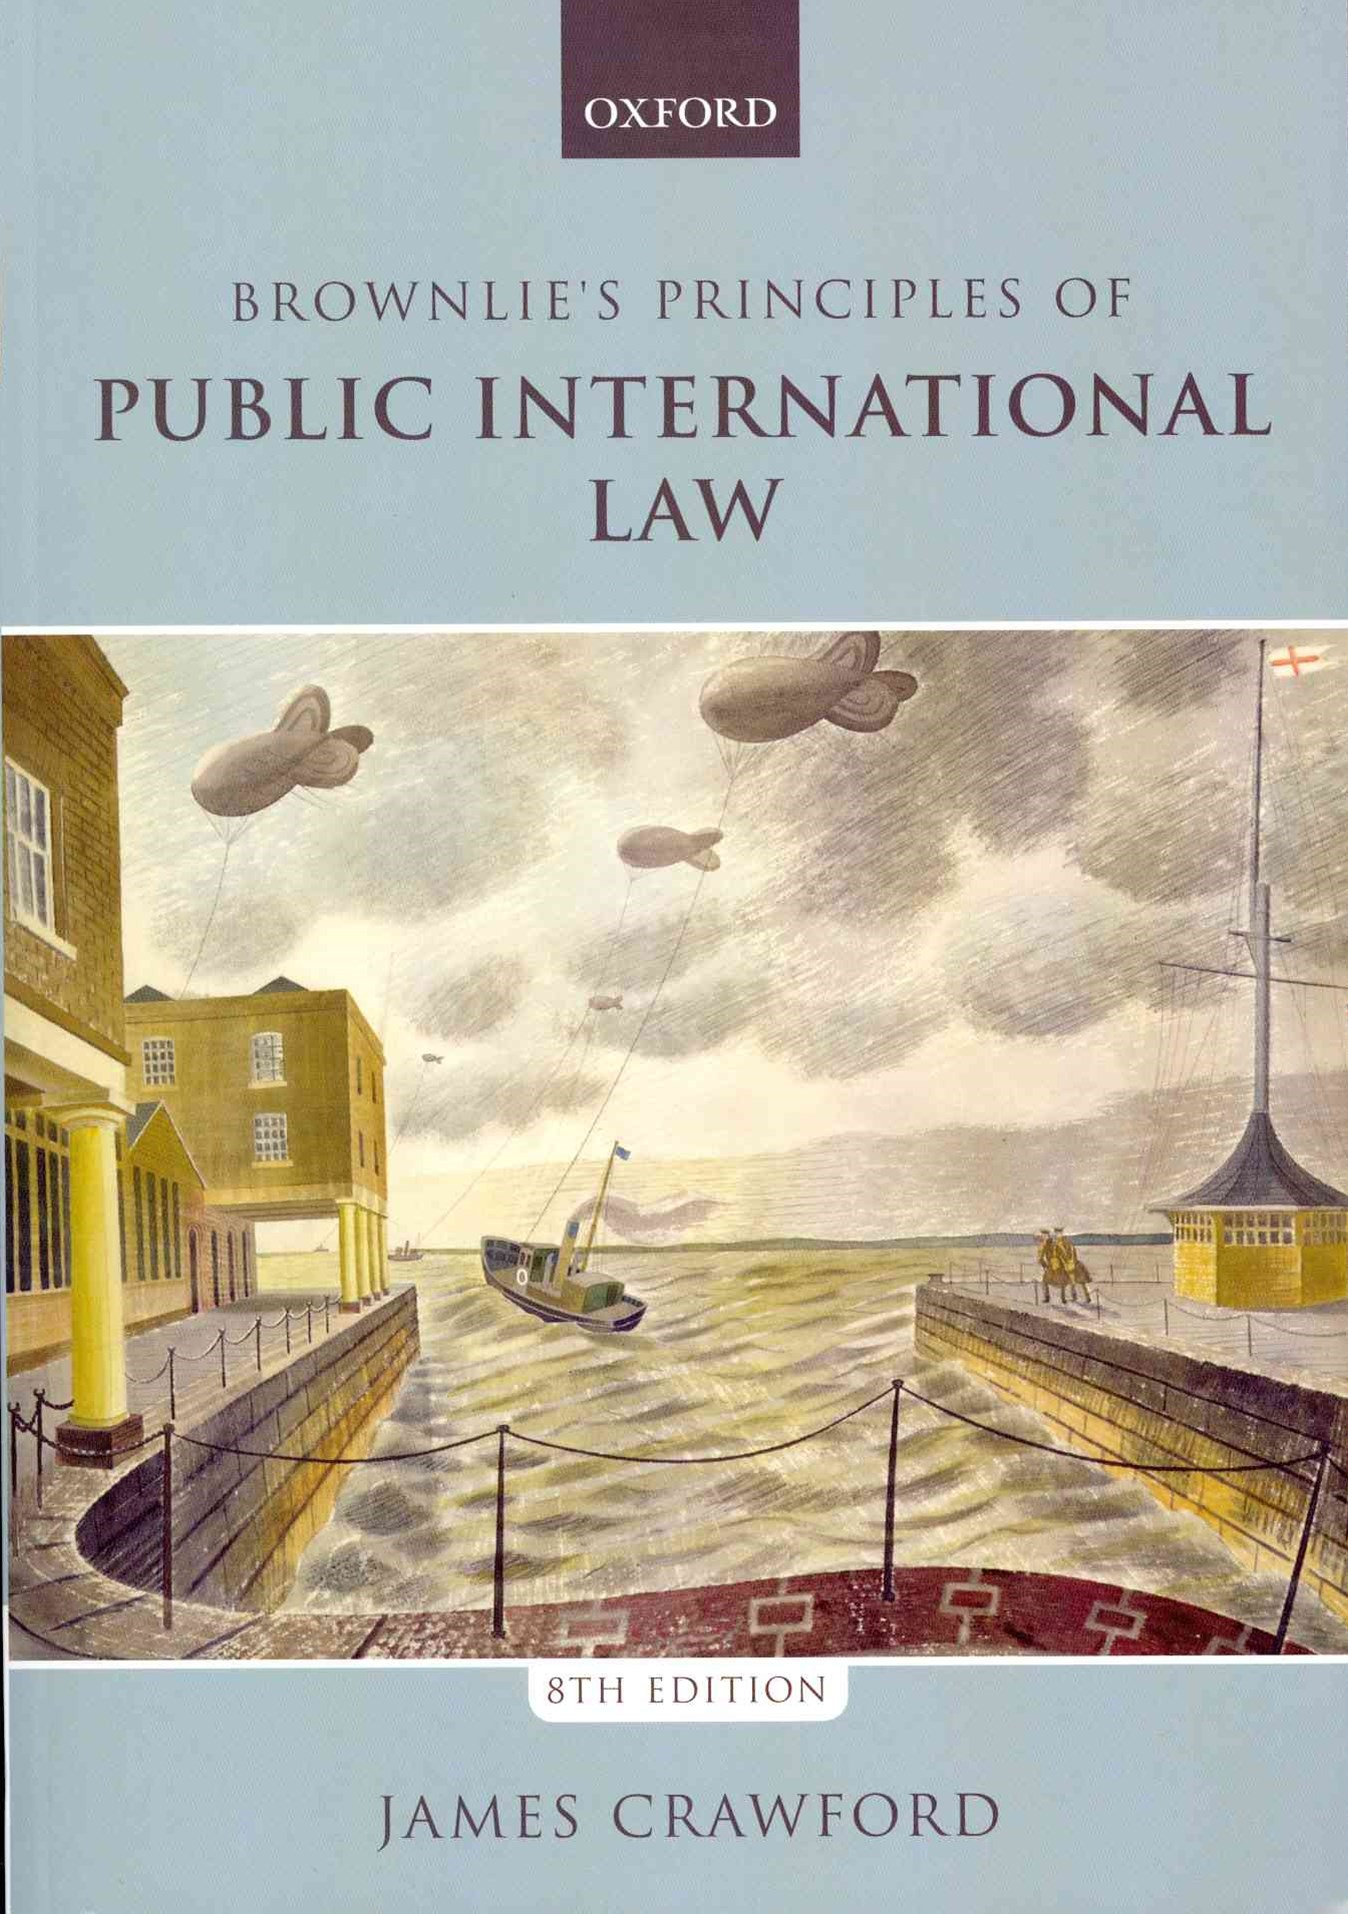 Brownlie's Principles of Public International Law